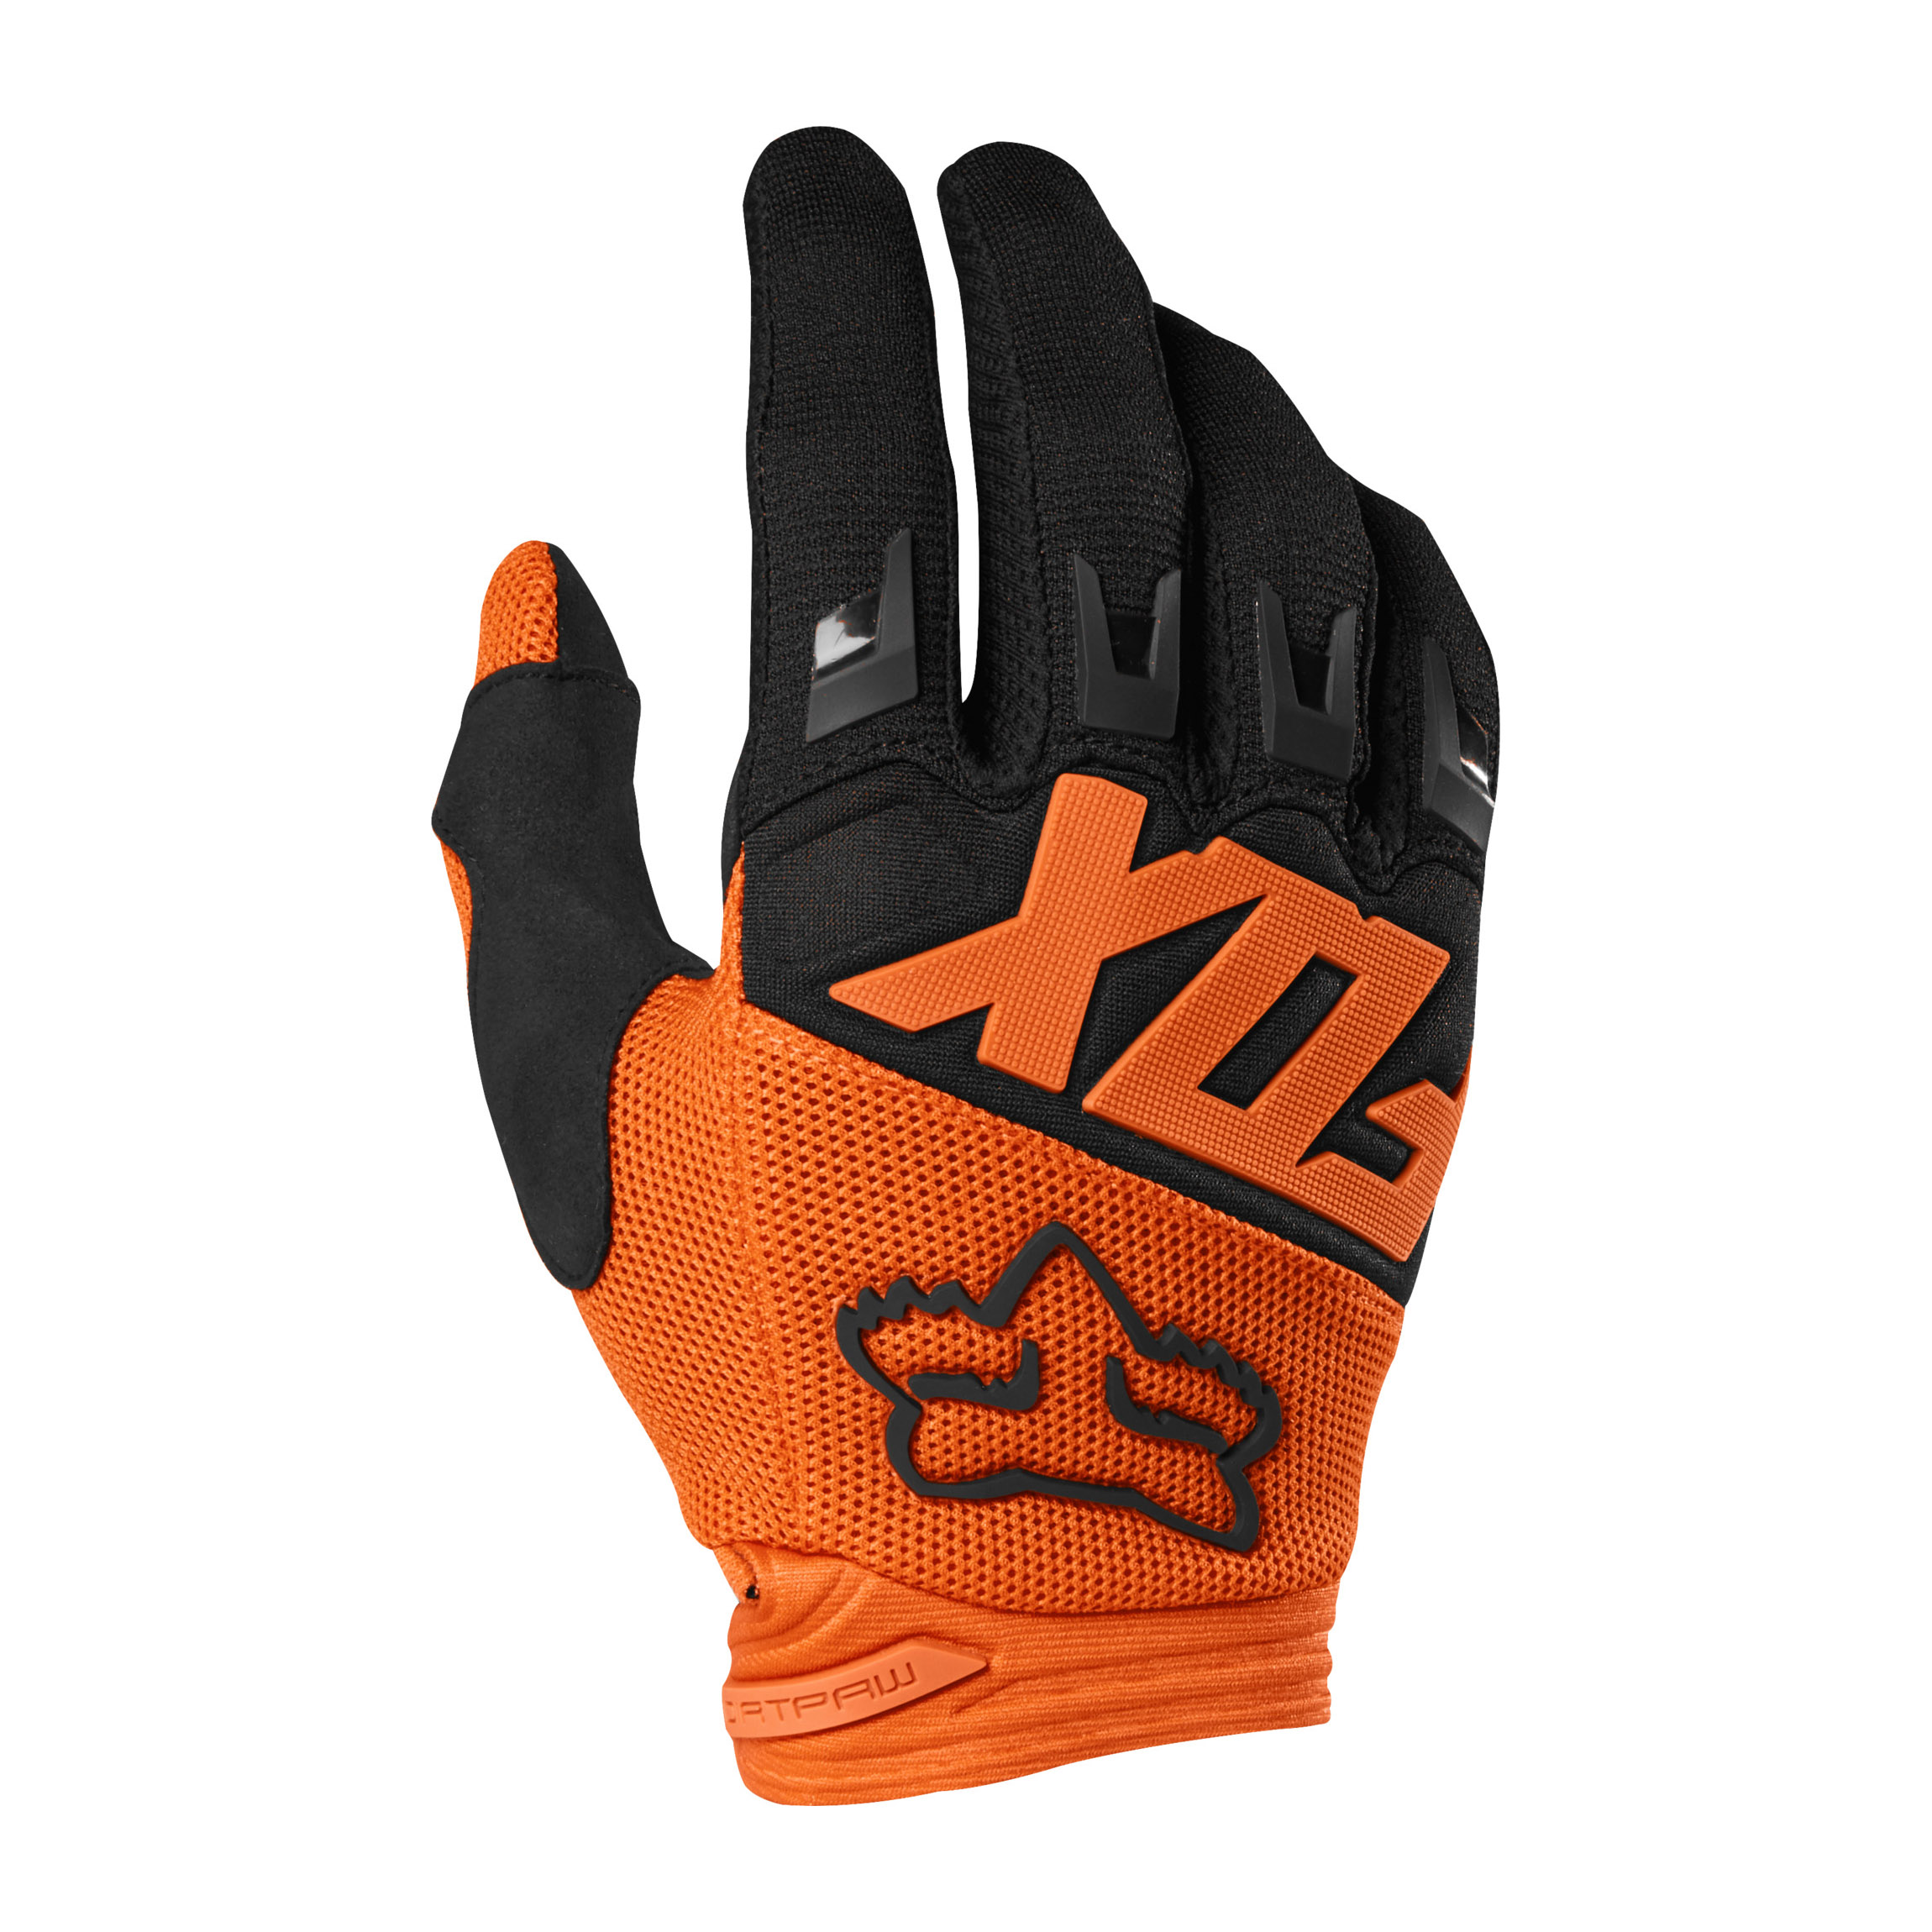 FOX 2019 Handschuhe Dirtpaw, orange